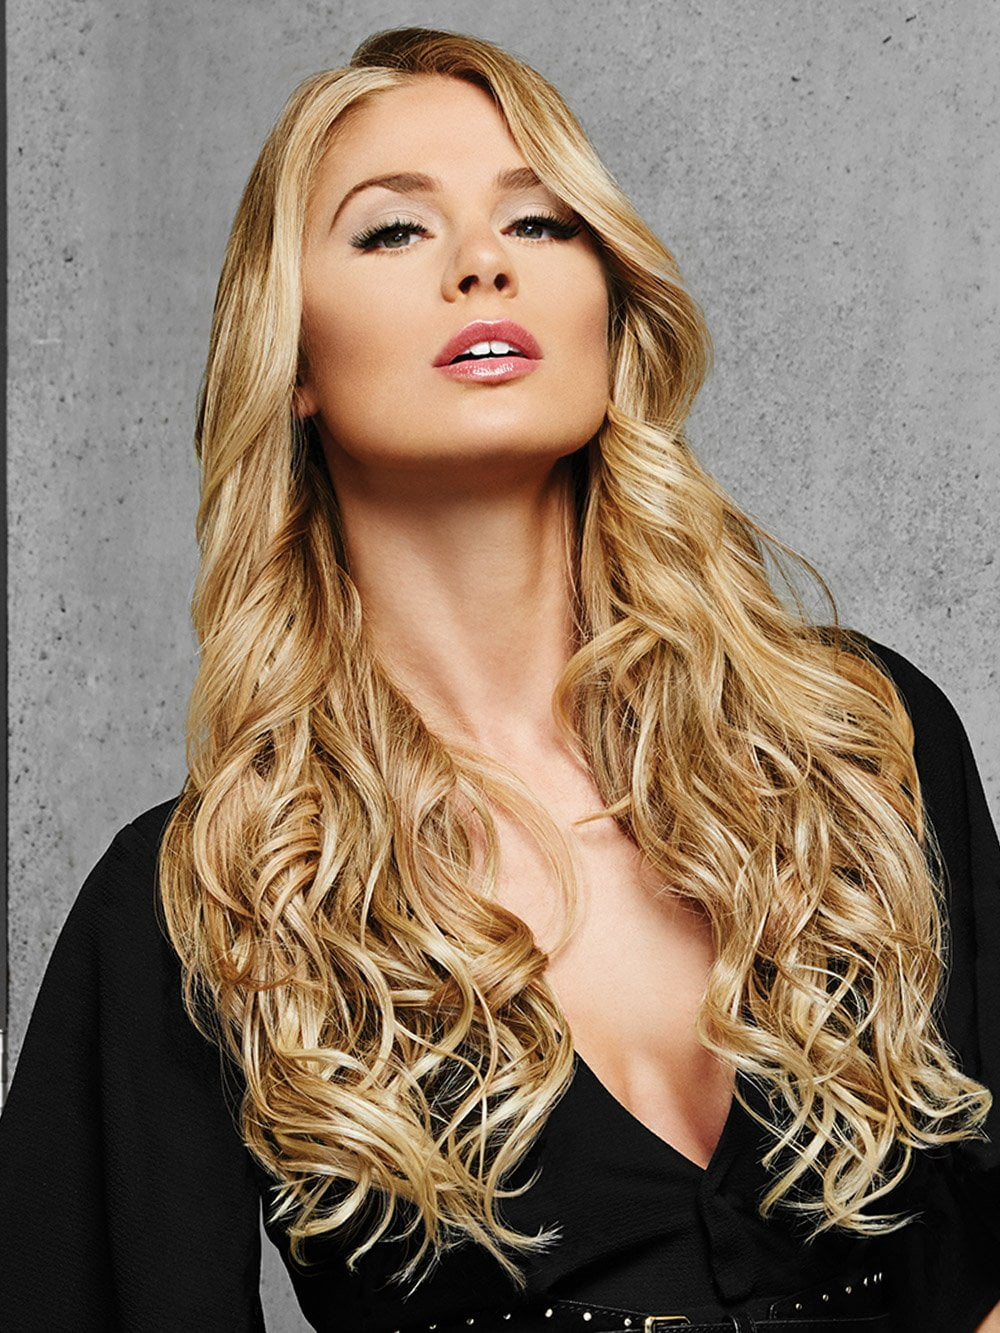 Just Clip In and Go! With this 1 piece extension system bu HAIRDO its easy to add length that's pre-styled to match